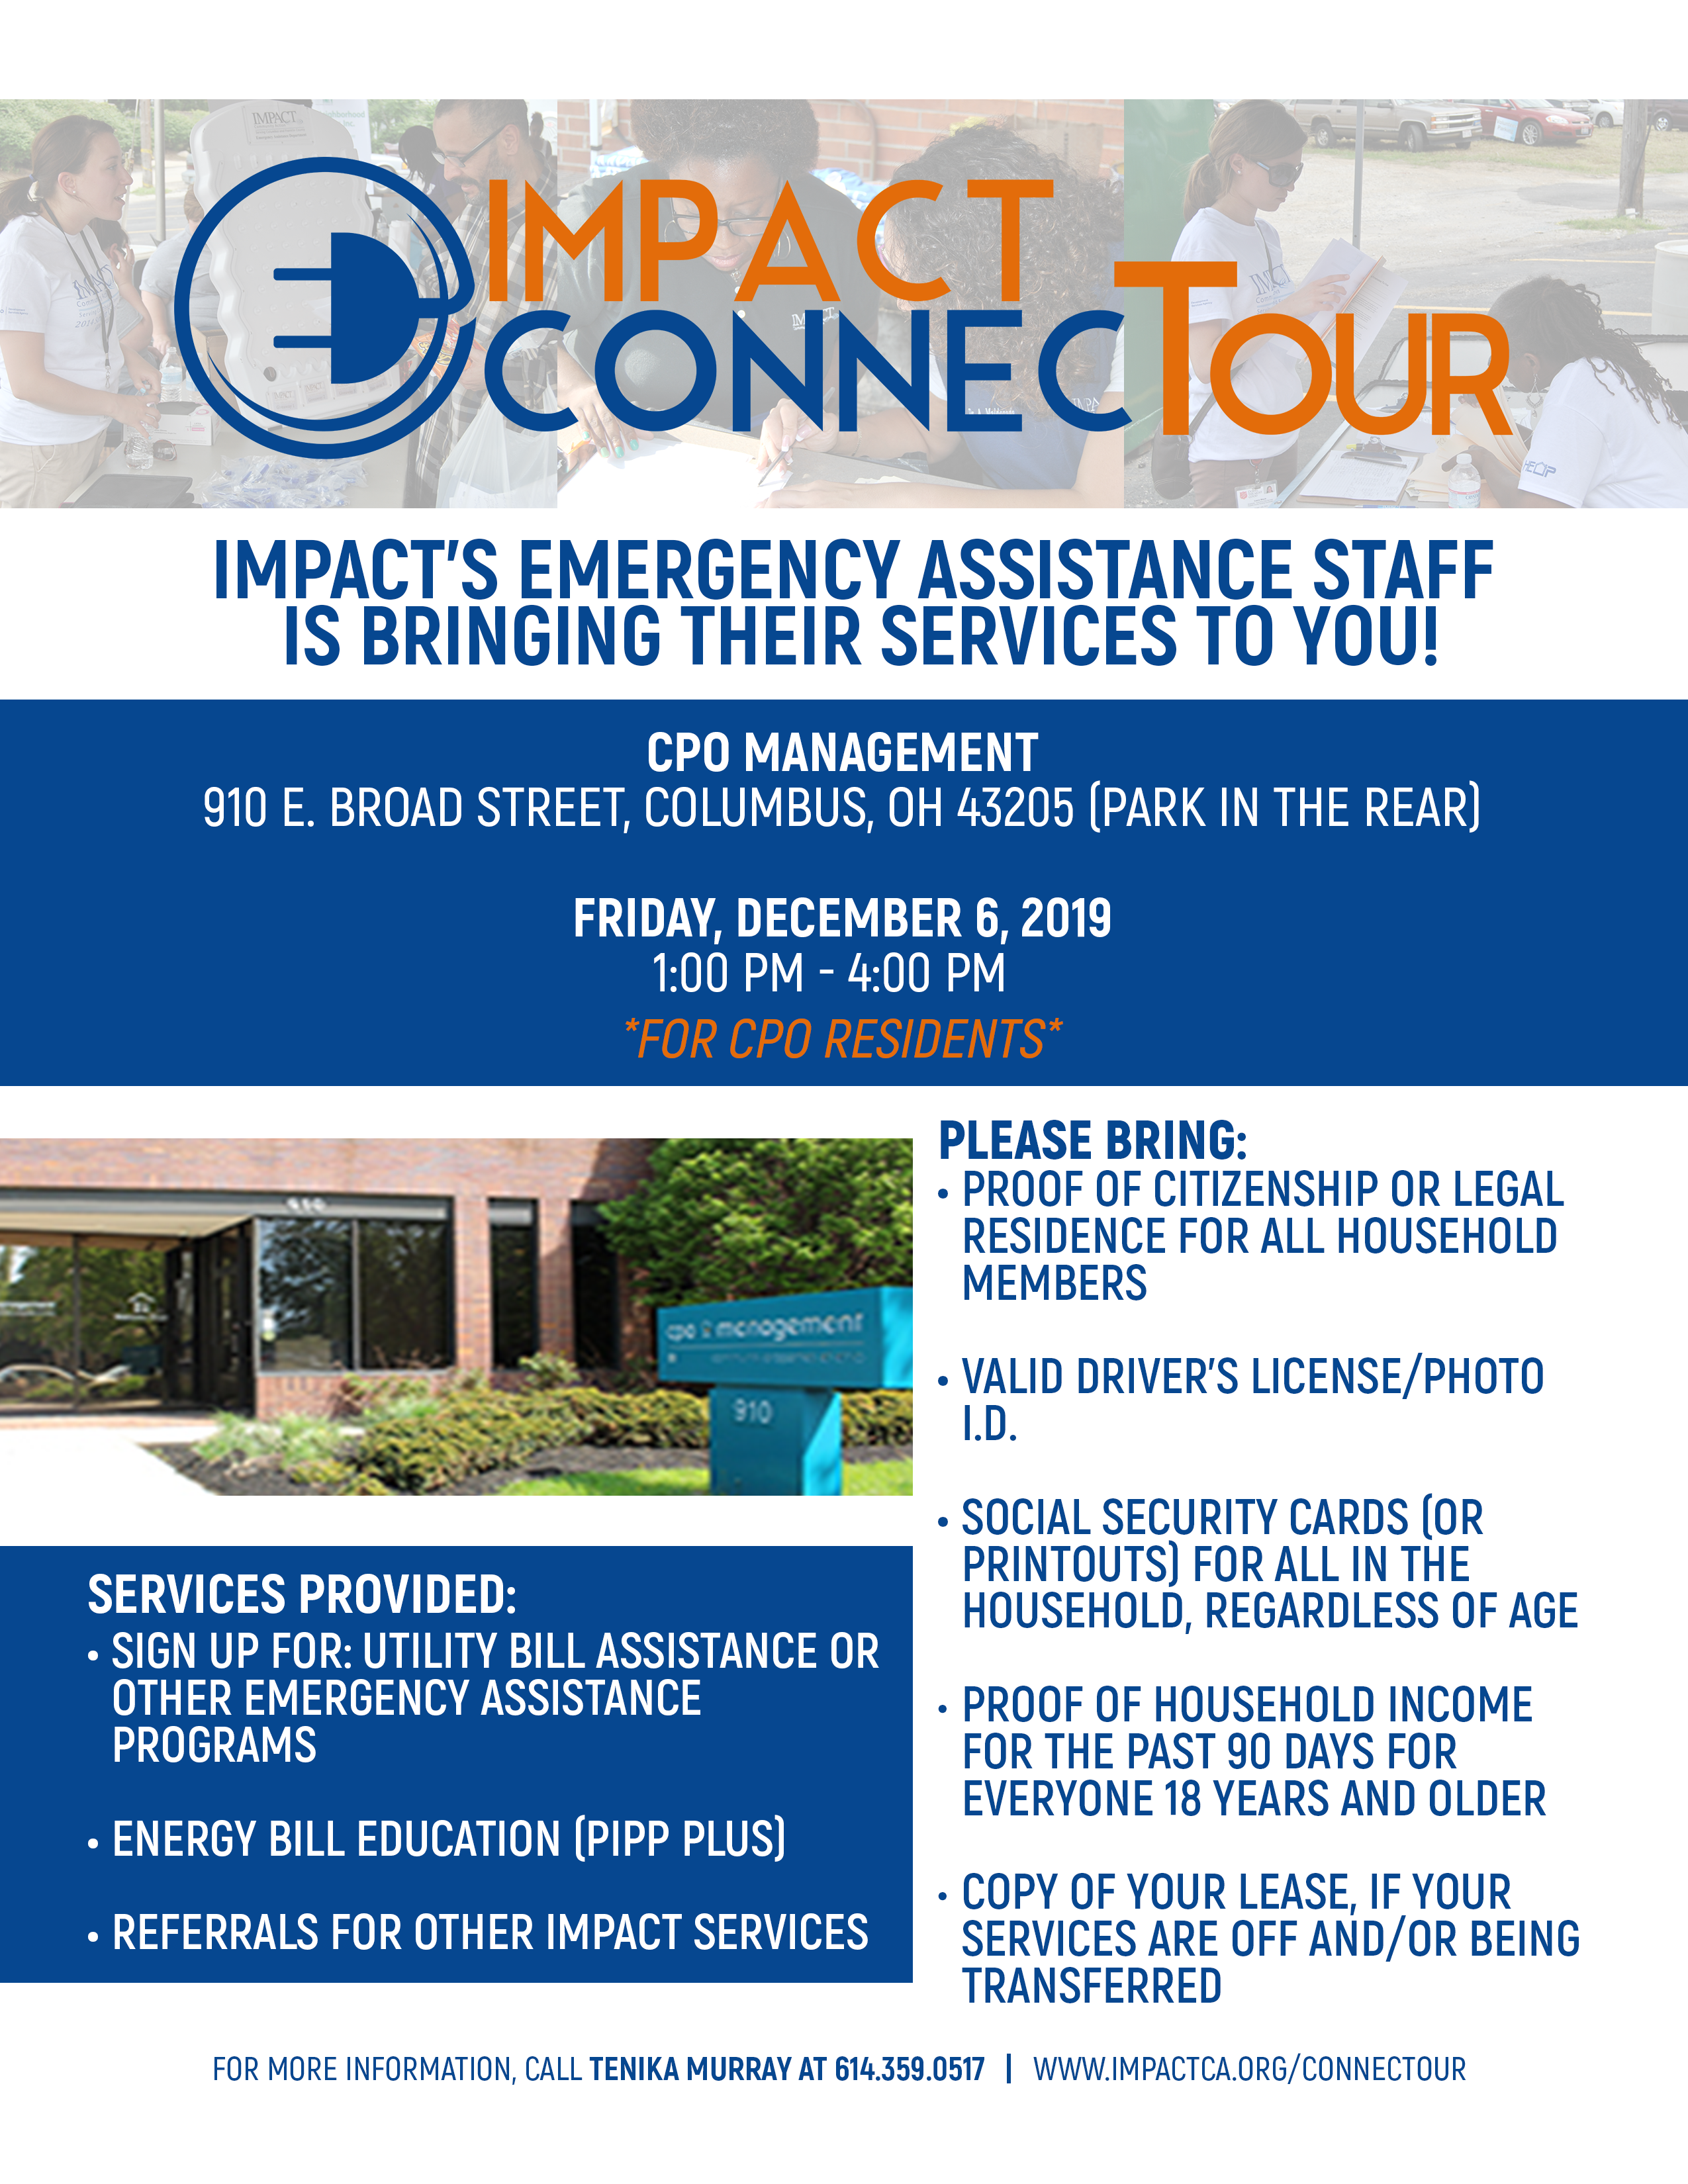 IMPACT ConnecTour (For CPO Residents Only)